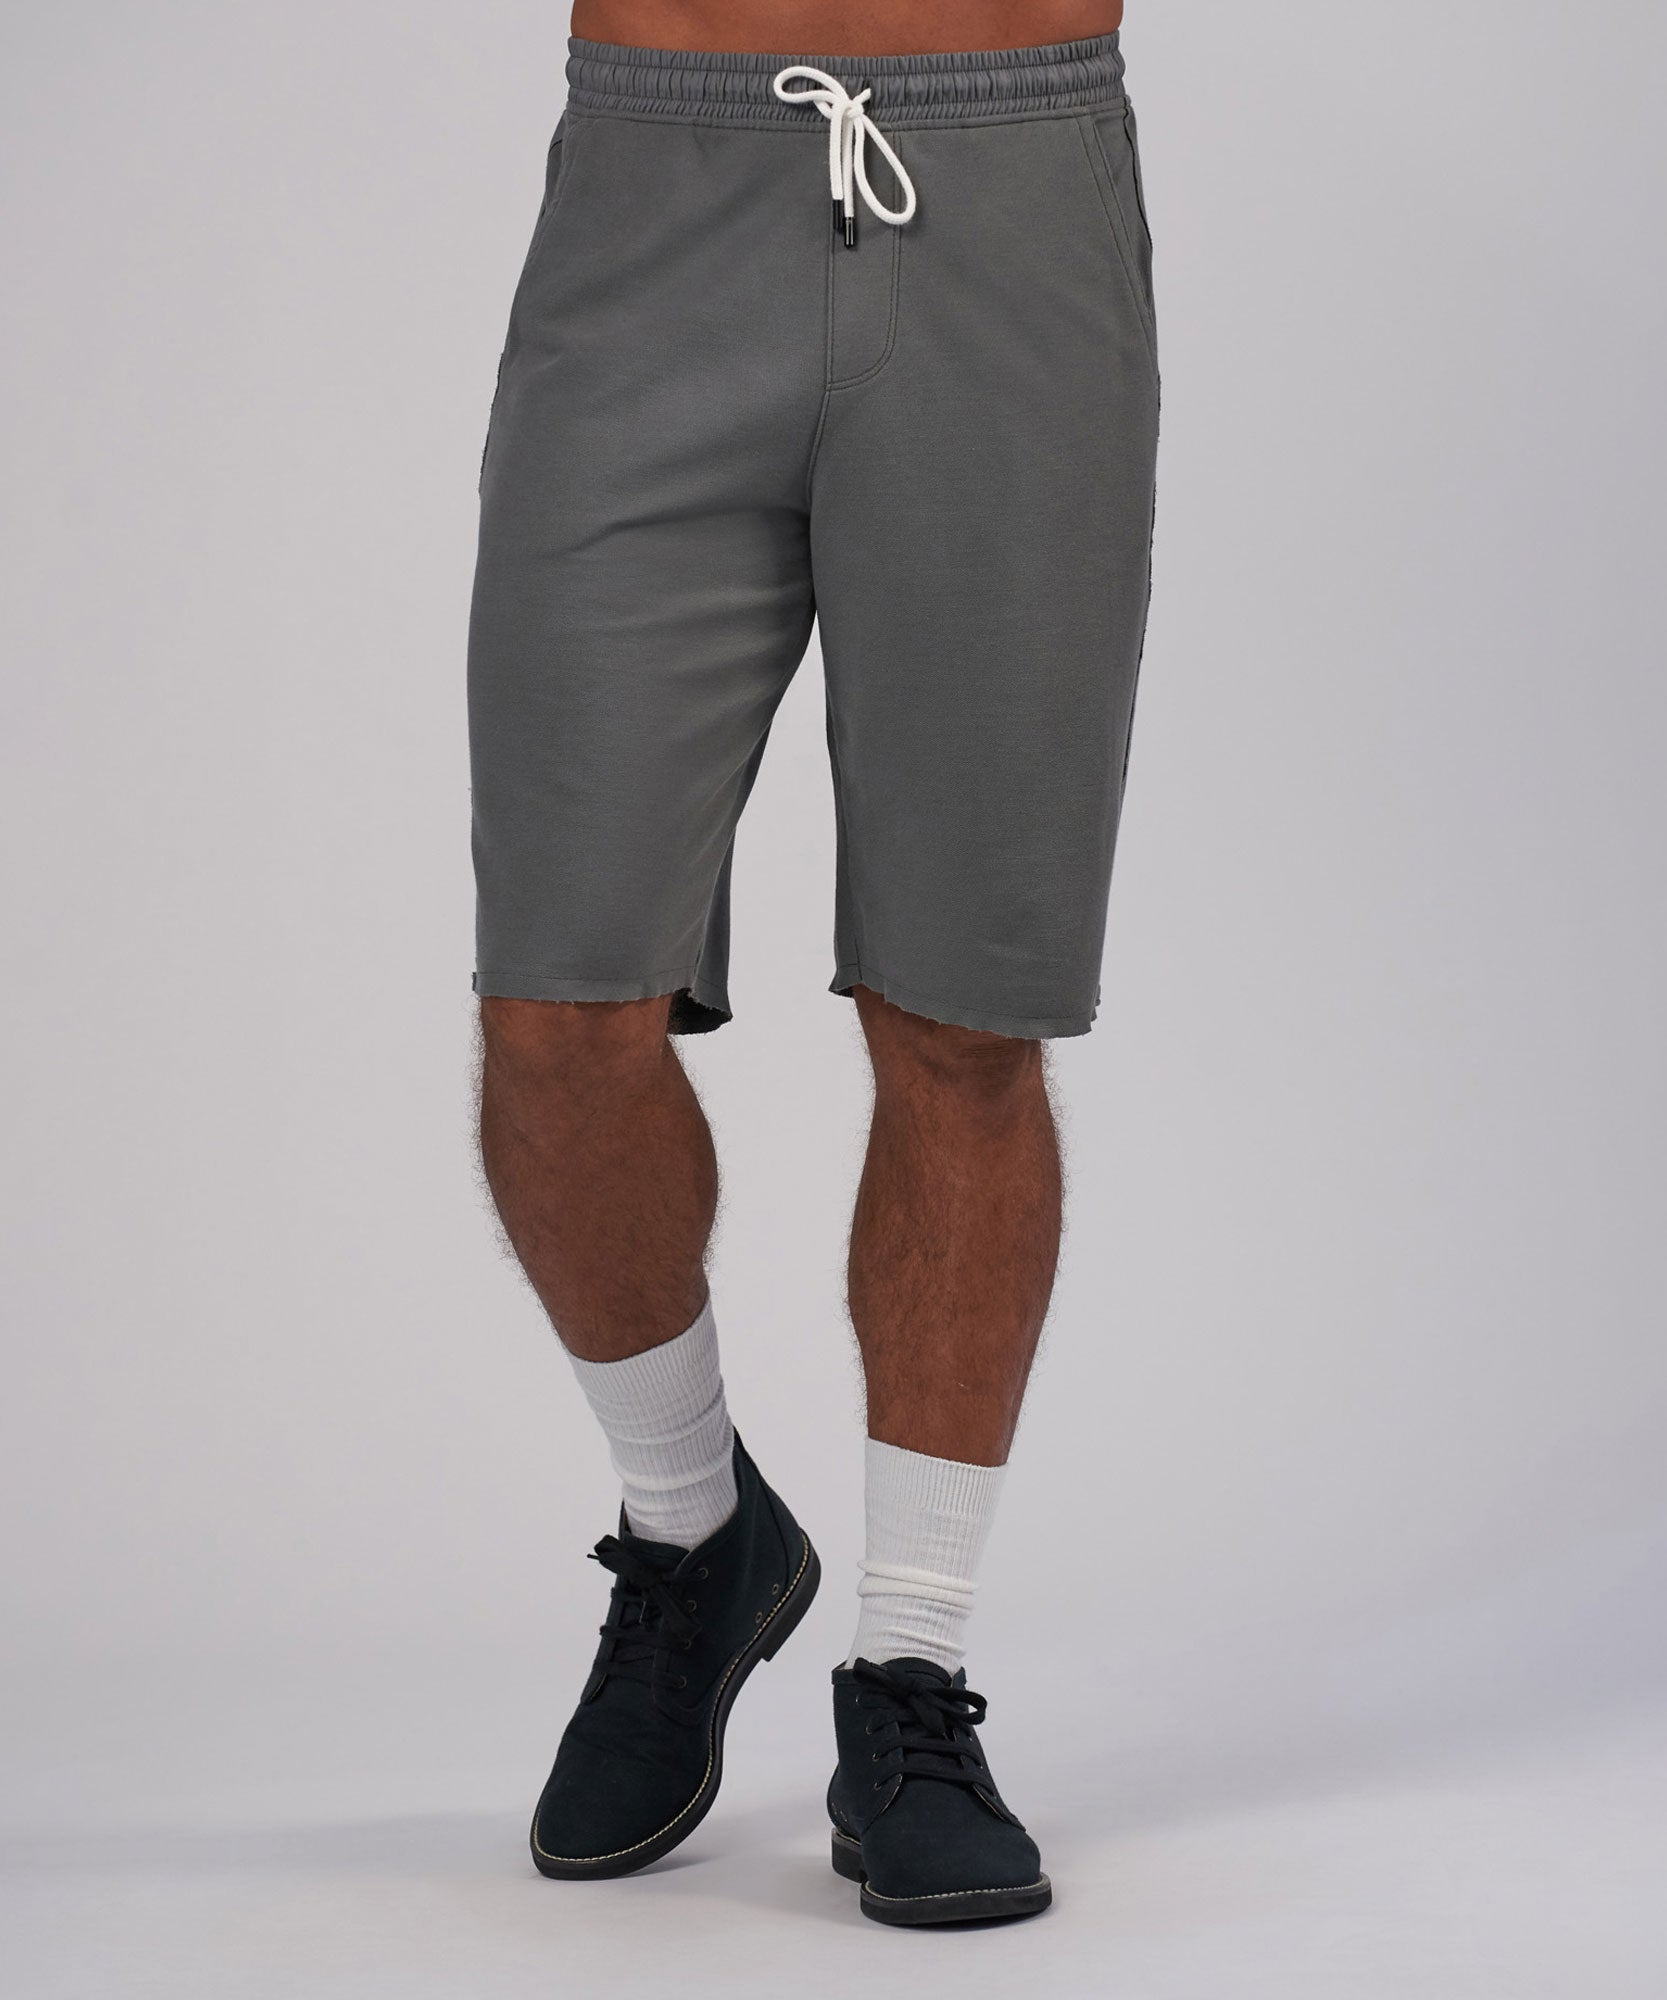 Storm Pique Pull-On Shorts - Men's Luxe Loungewear by ATM Anthony Thomas Melillo